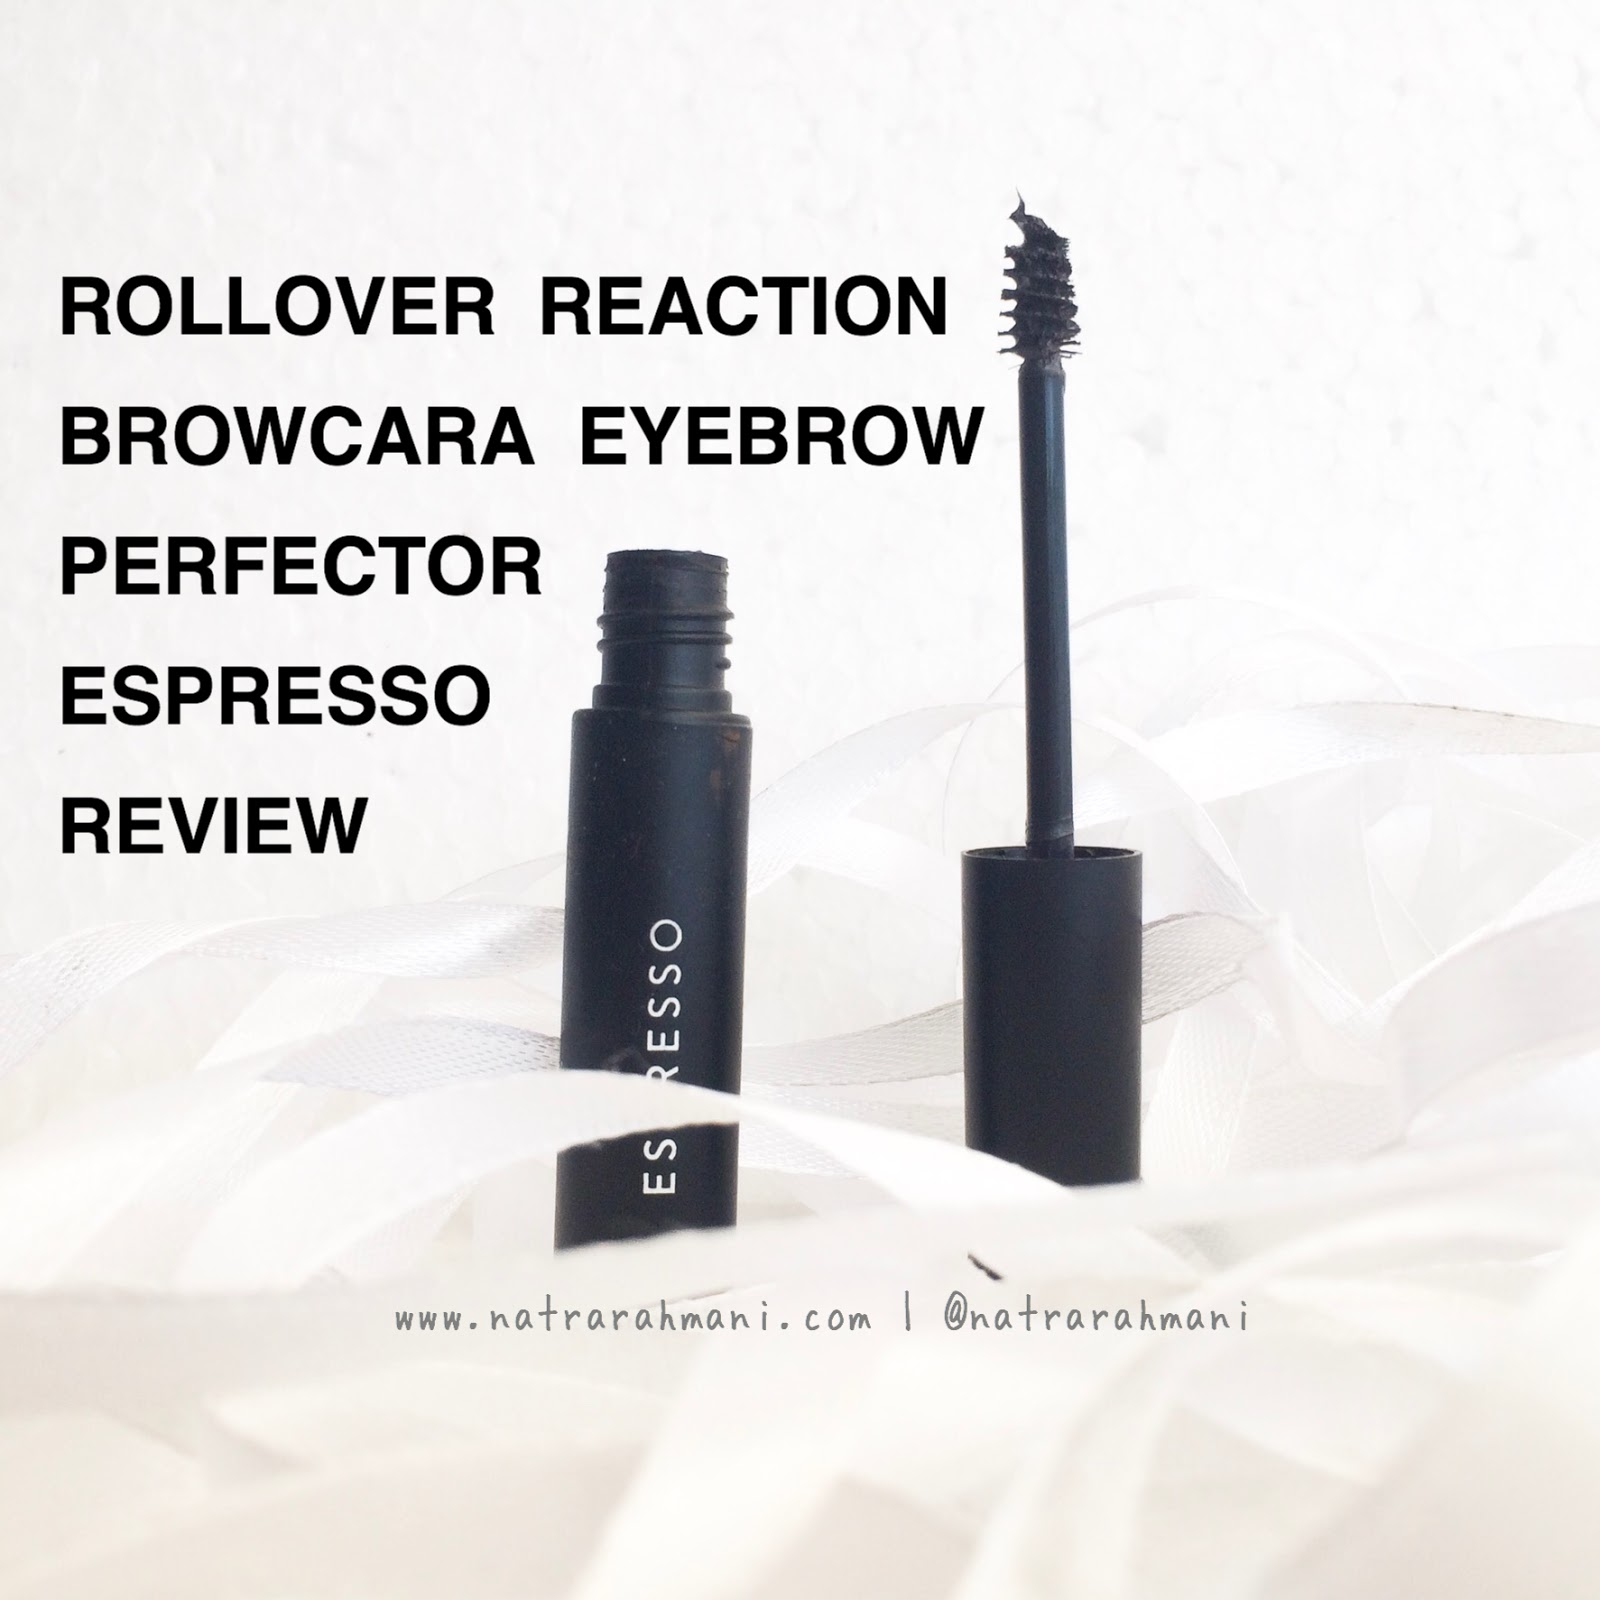 rollover-reaction-browcara-eyebrow-perfector-espresso-review-natrarahmani